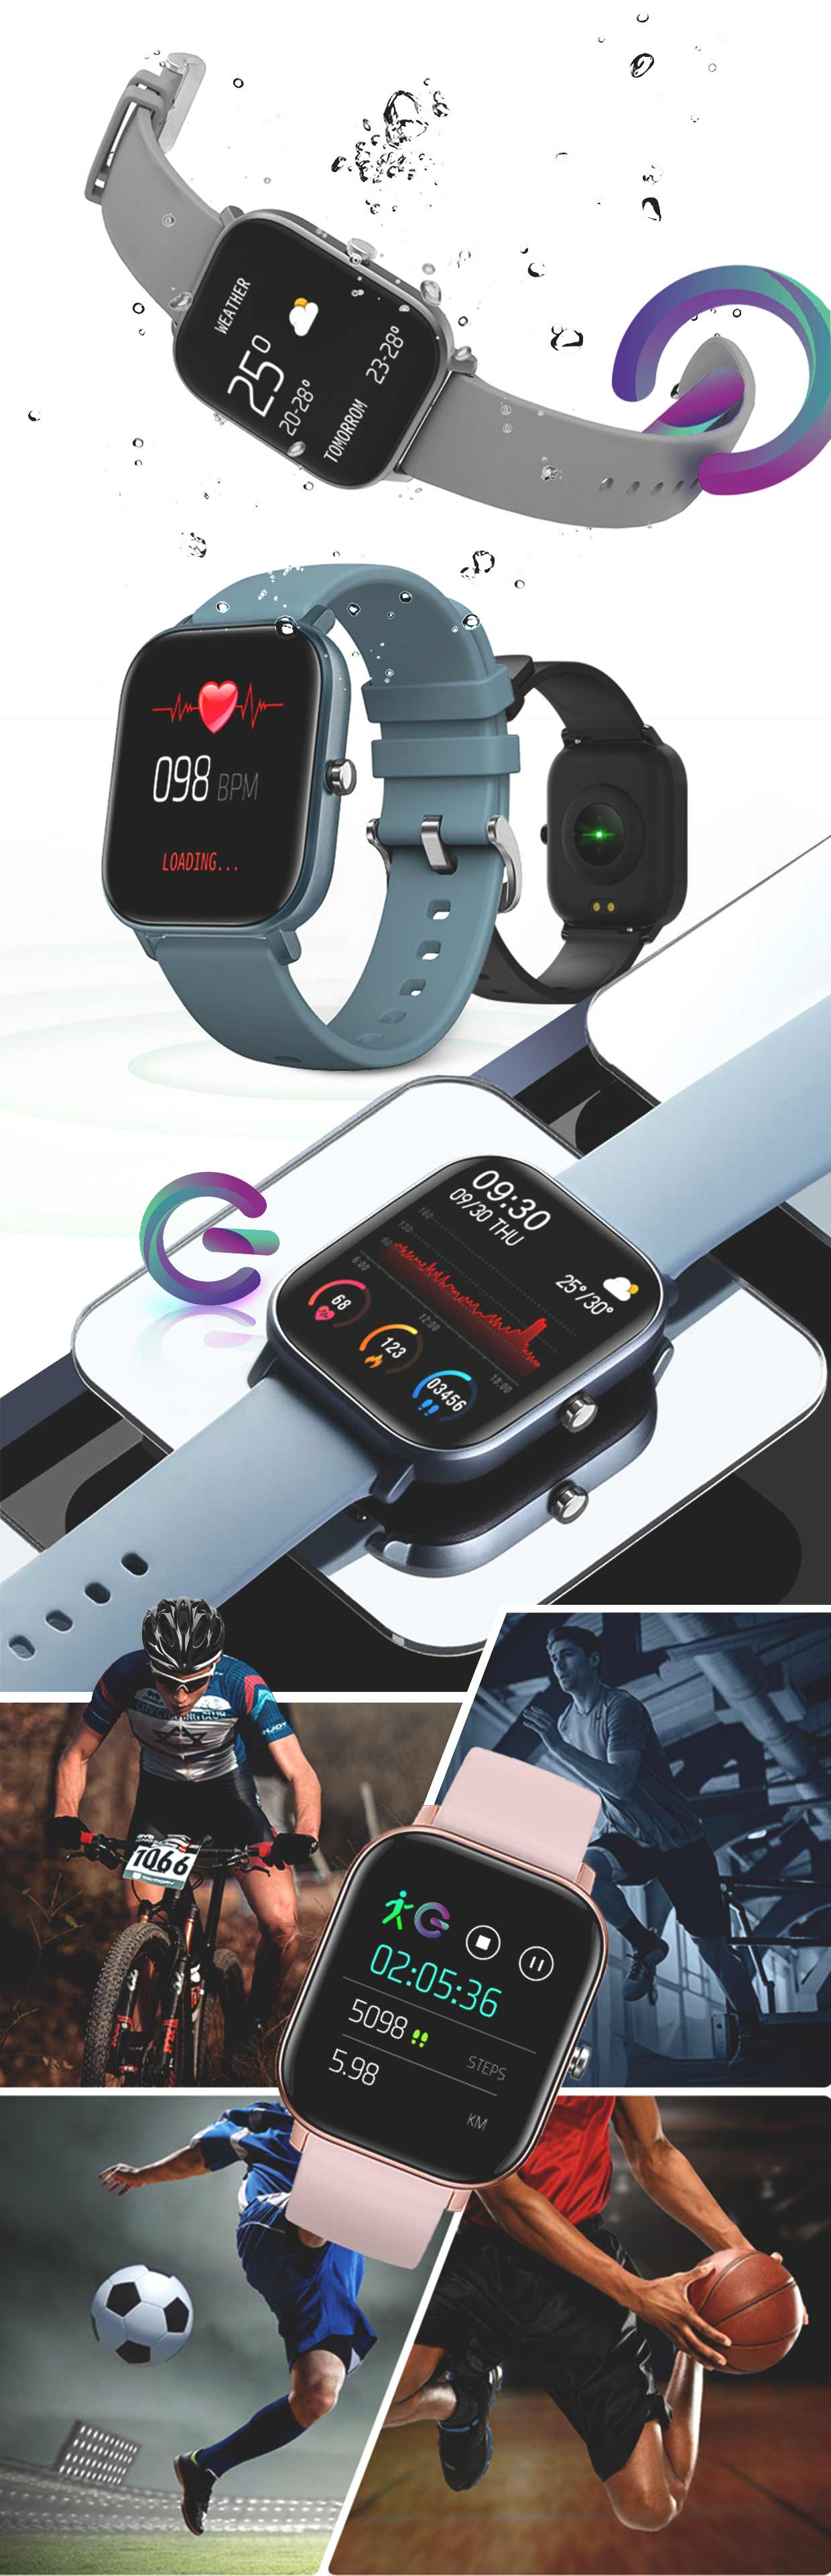 p8-pro-smartwatch-buy-order-online-free-delivery-south-africa-usa-ecstatech